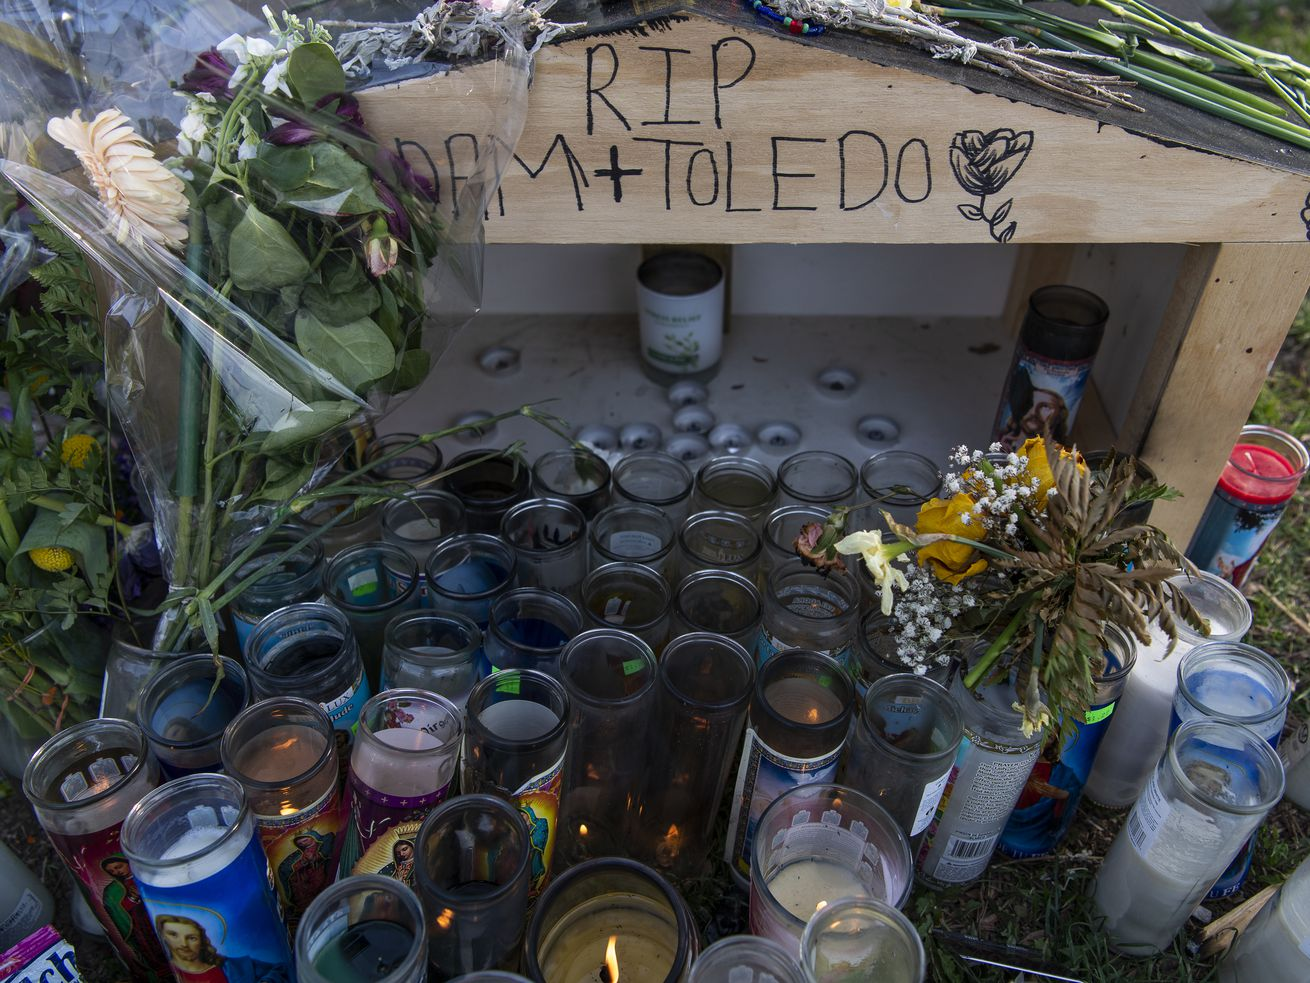 A memorial sits at the mouth of the alleyway where Adam Toledo was shot and killed by Chicago police near 24th Street and Sawyer Avenue in the Little Village neighborhood.